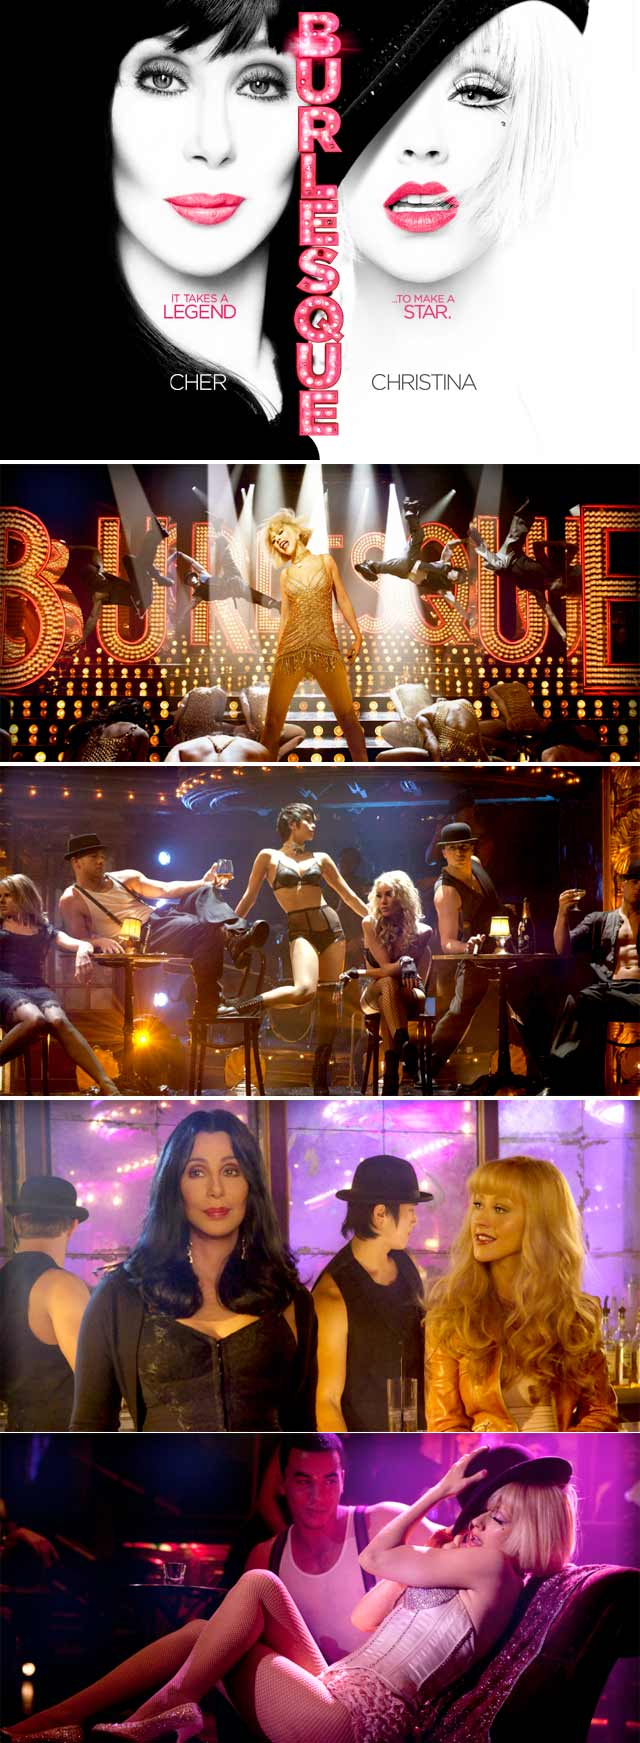 Top Billing discusses the latest release Burlesque, with Cher and Christina Aguilera